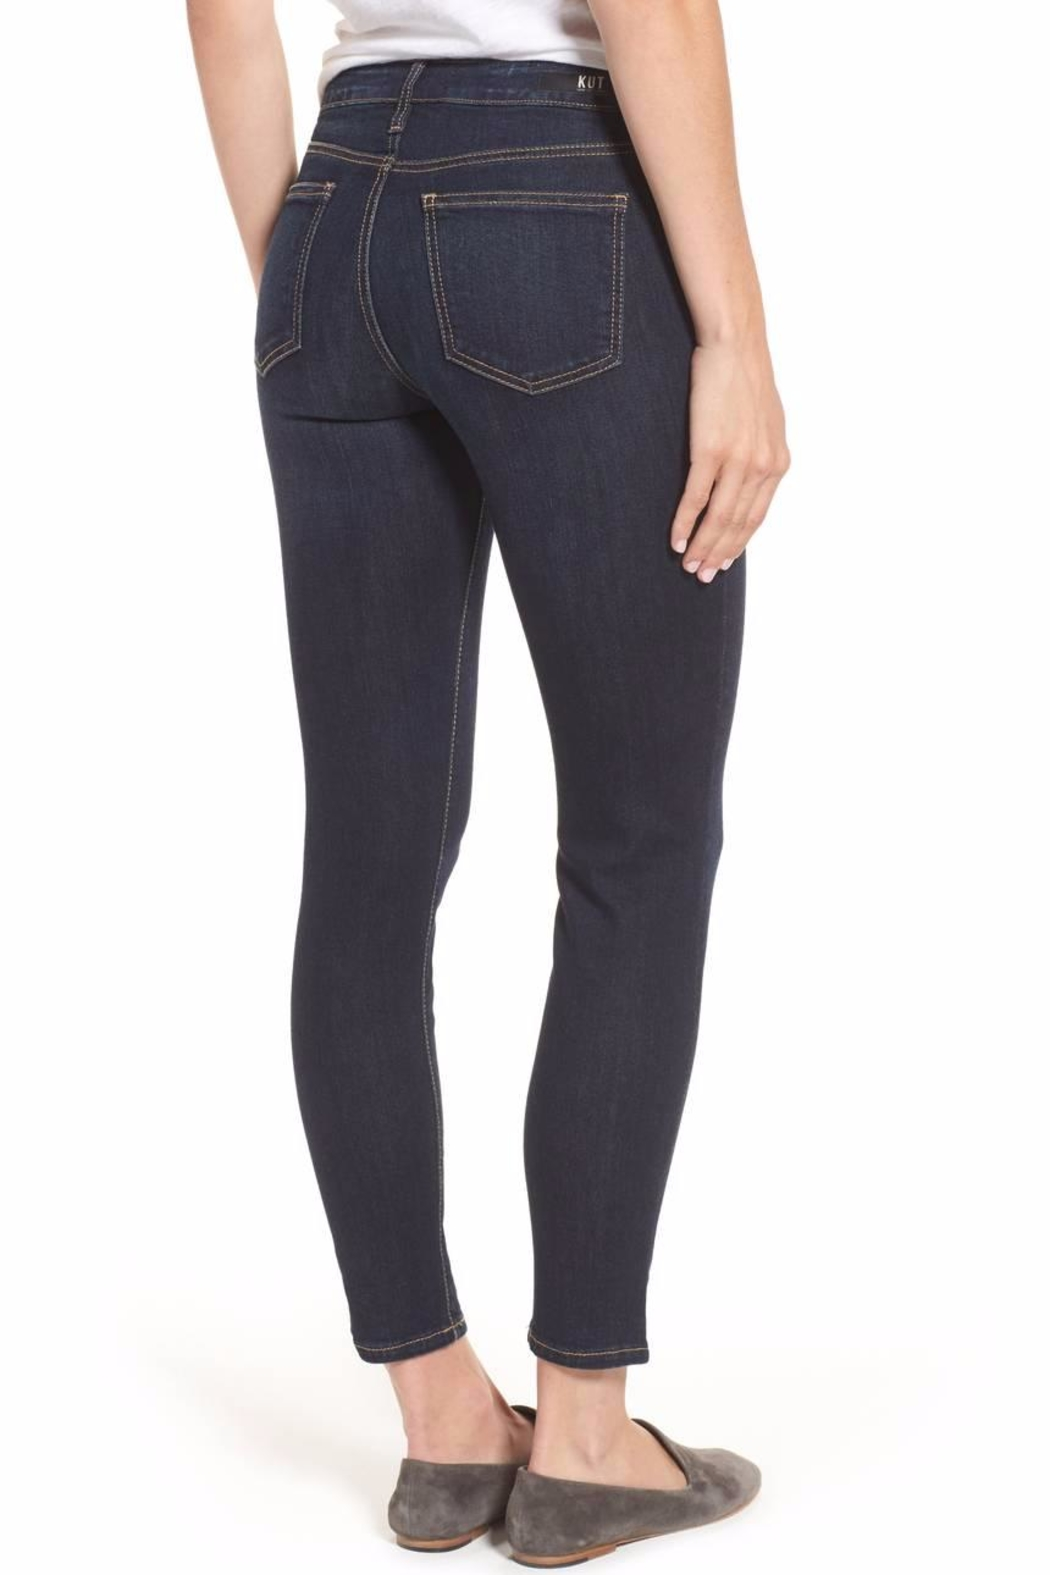 Kut from the Kloth Kurvy Ankle Jeans - Front Full Image